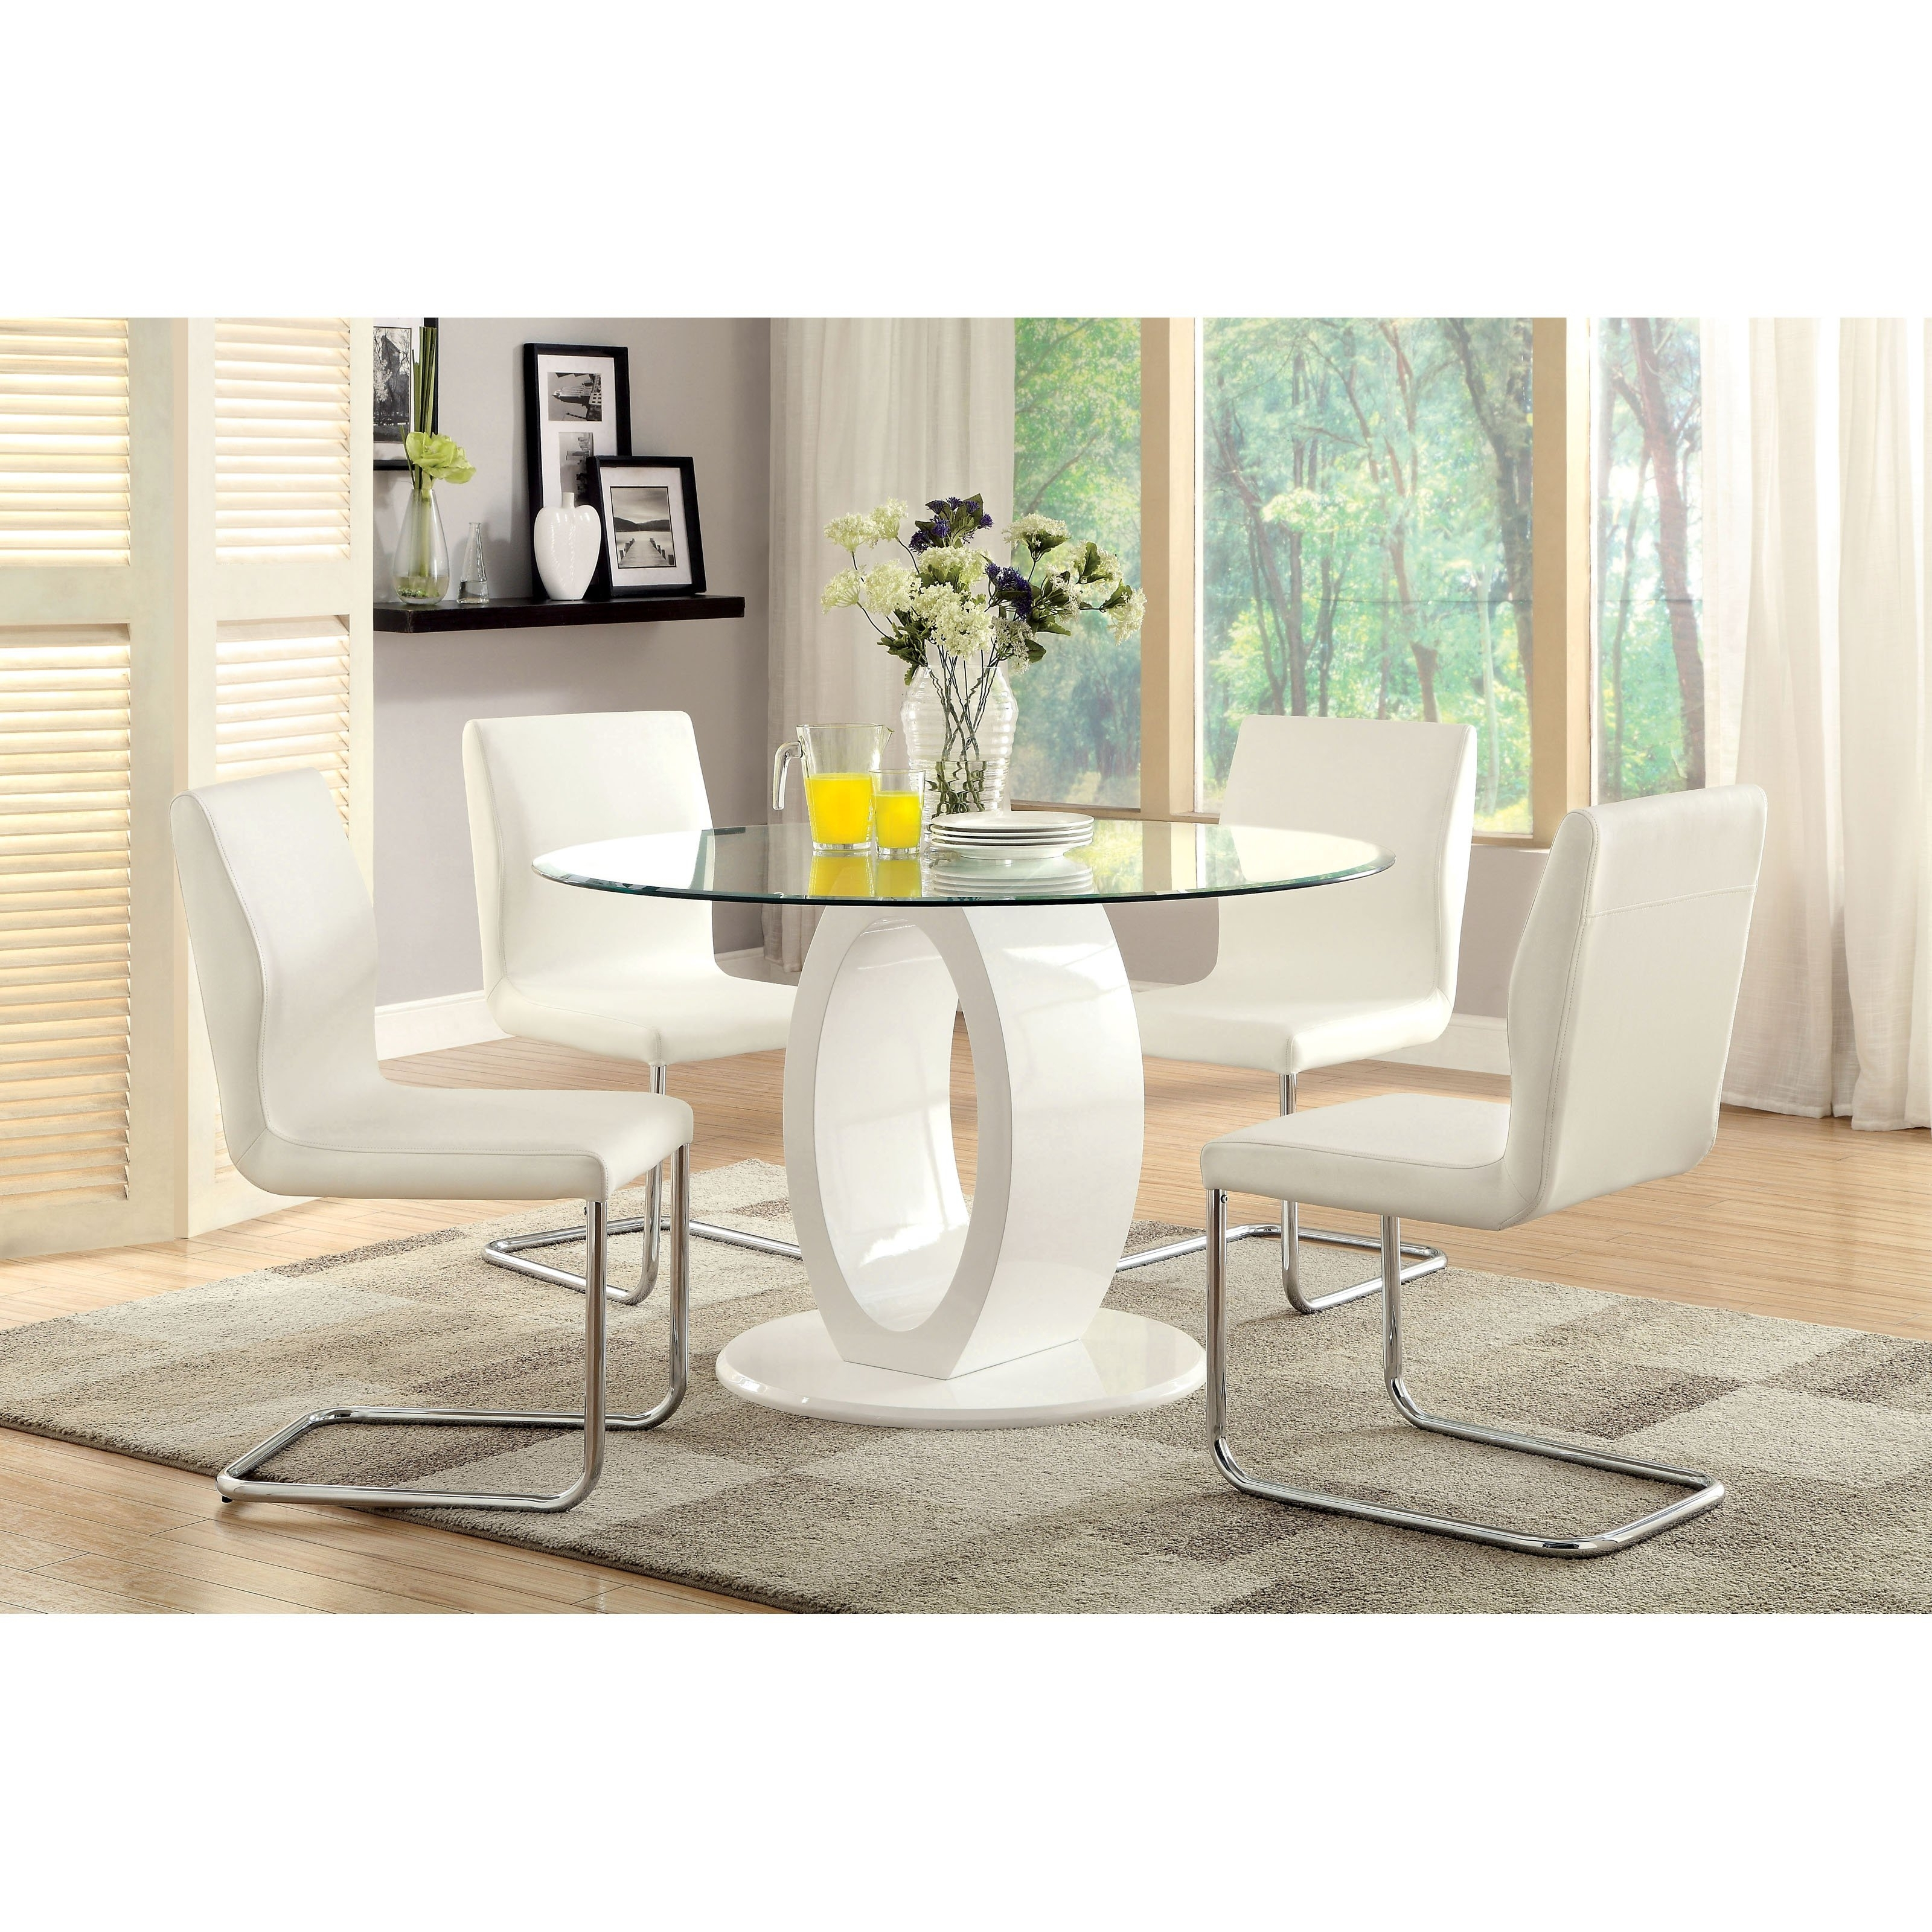 Popular White High Gloss Oval Dining Tables For Furniture Of America Damore Contemporary High Gloss Round Dining In (Gallery 24 of 25)